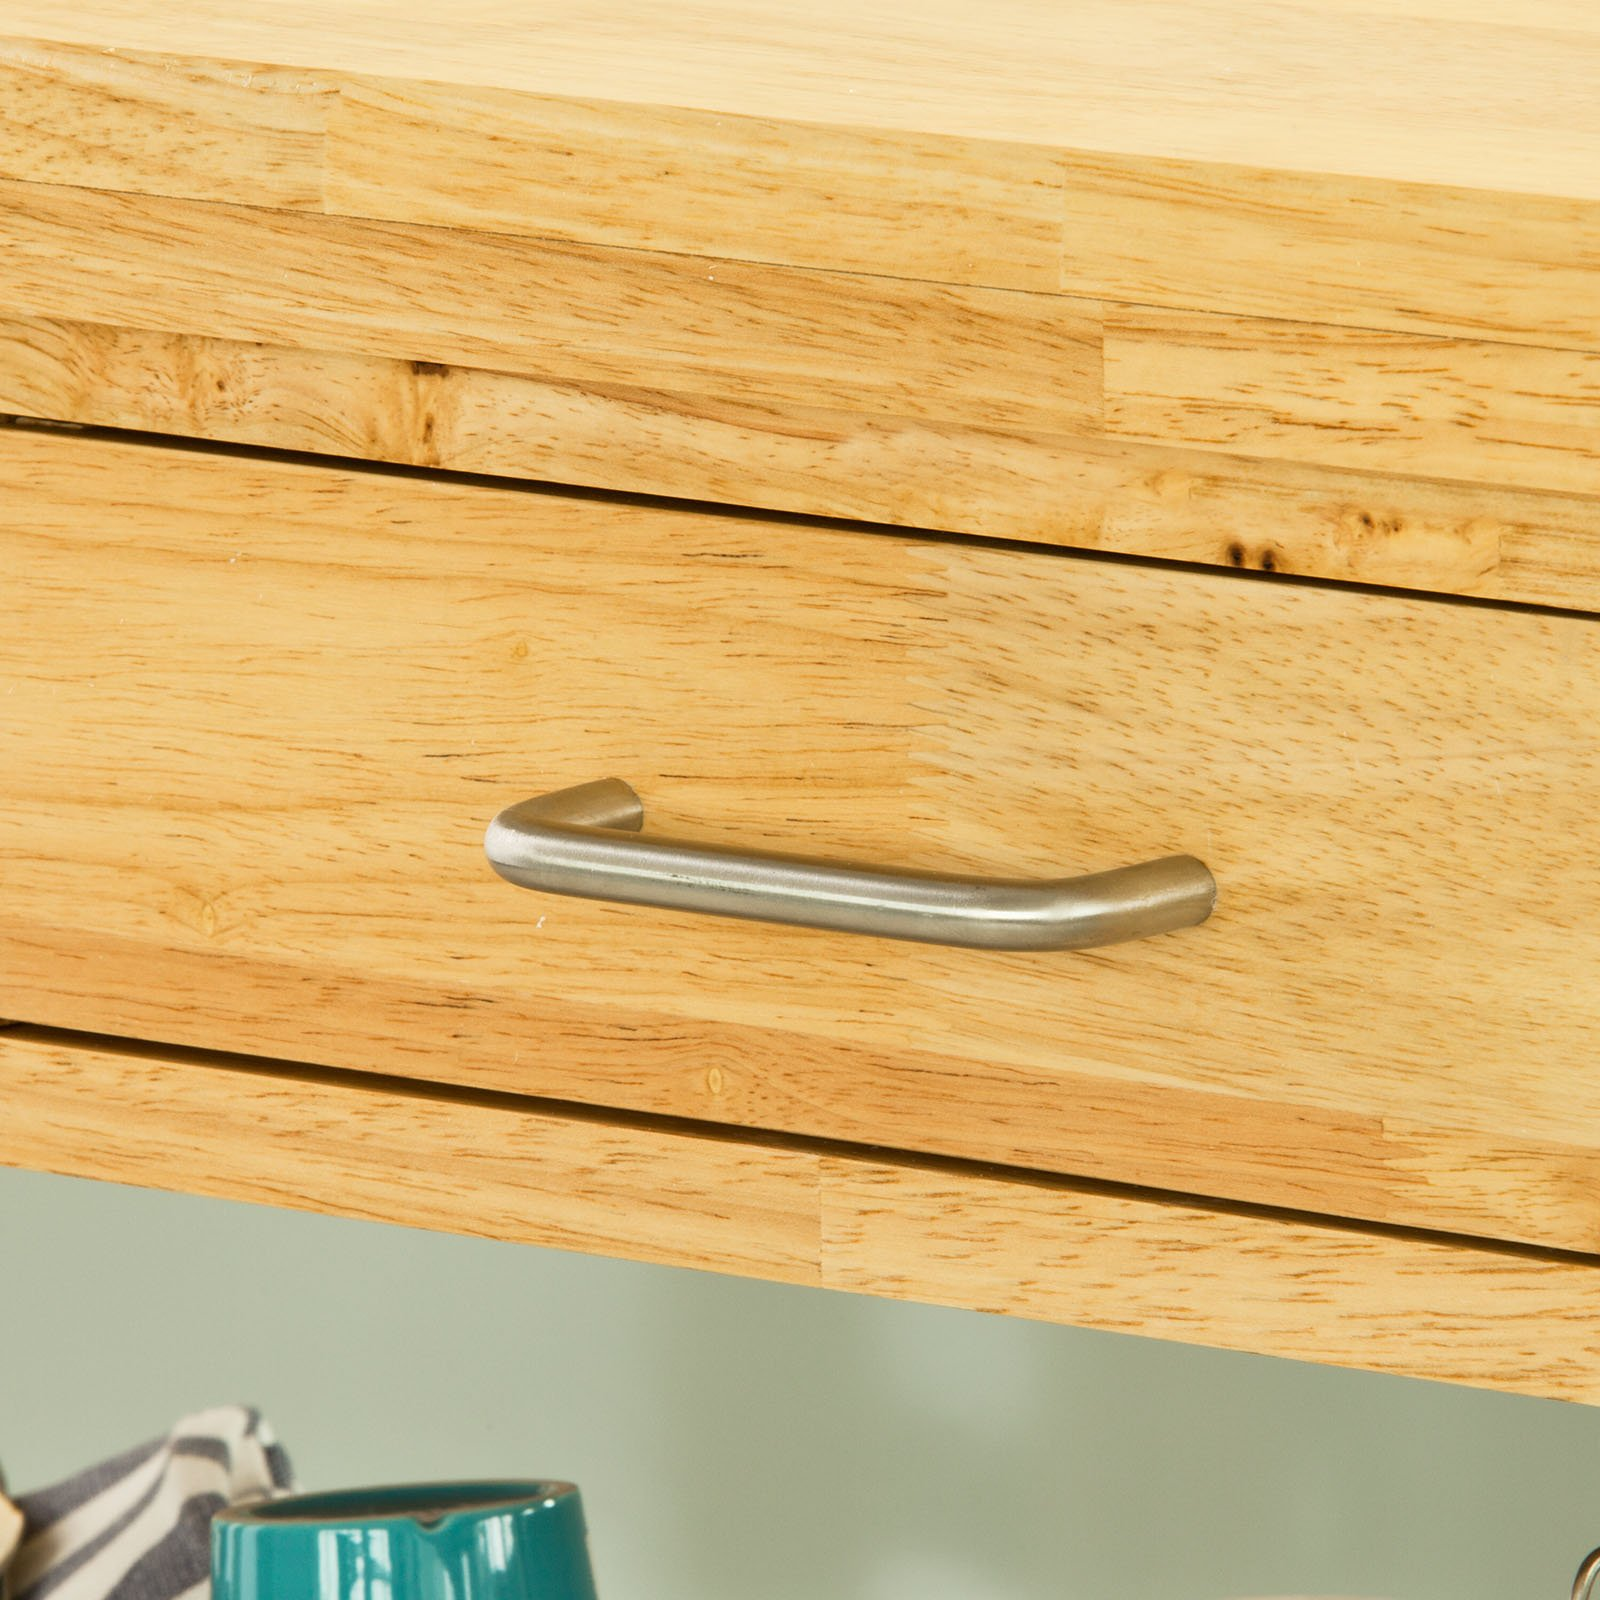 Haotian FKW24-N (natual), Rubber Wood Kitchen Trolley Cart with Two Drawers & Shelves, Kitchen Storage Trolley, L80cm(31.5in)xW40cm(15.7in)xH90cm(35.4in) by Haotian (Image #4)